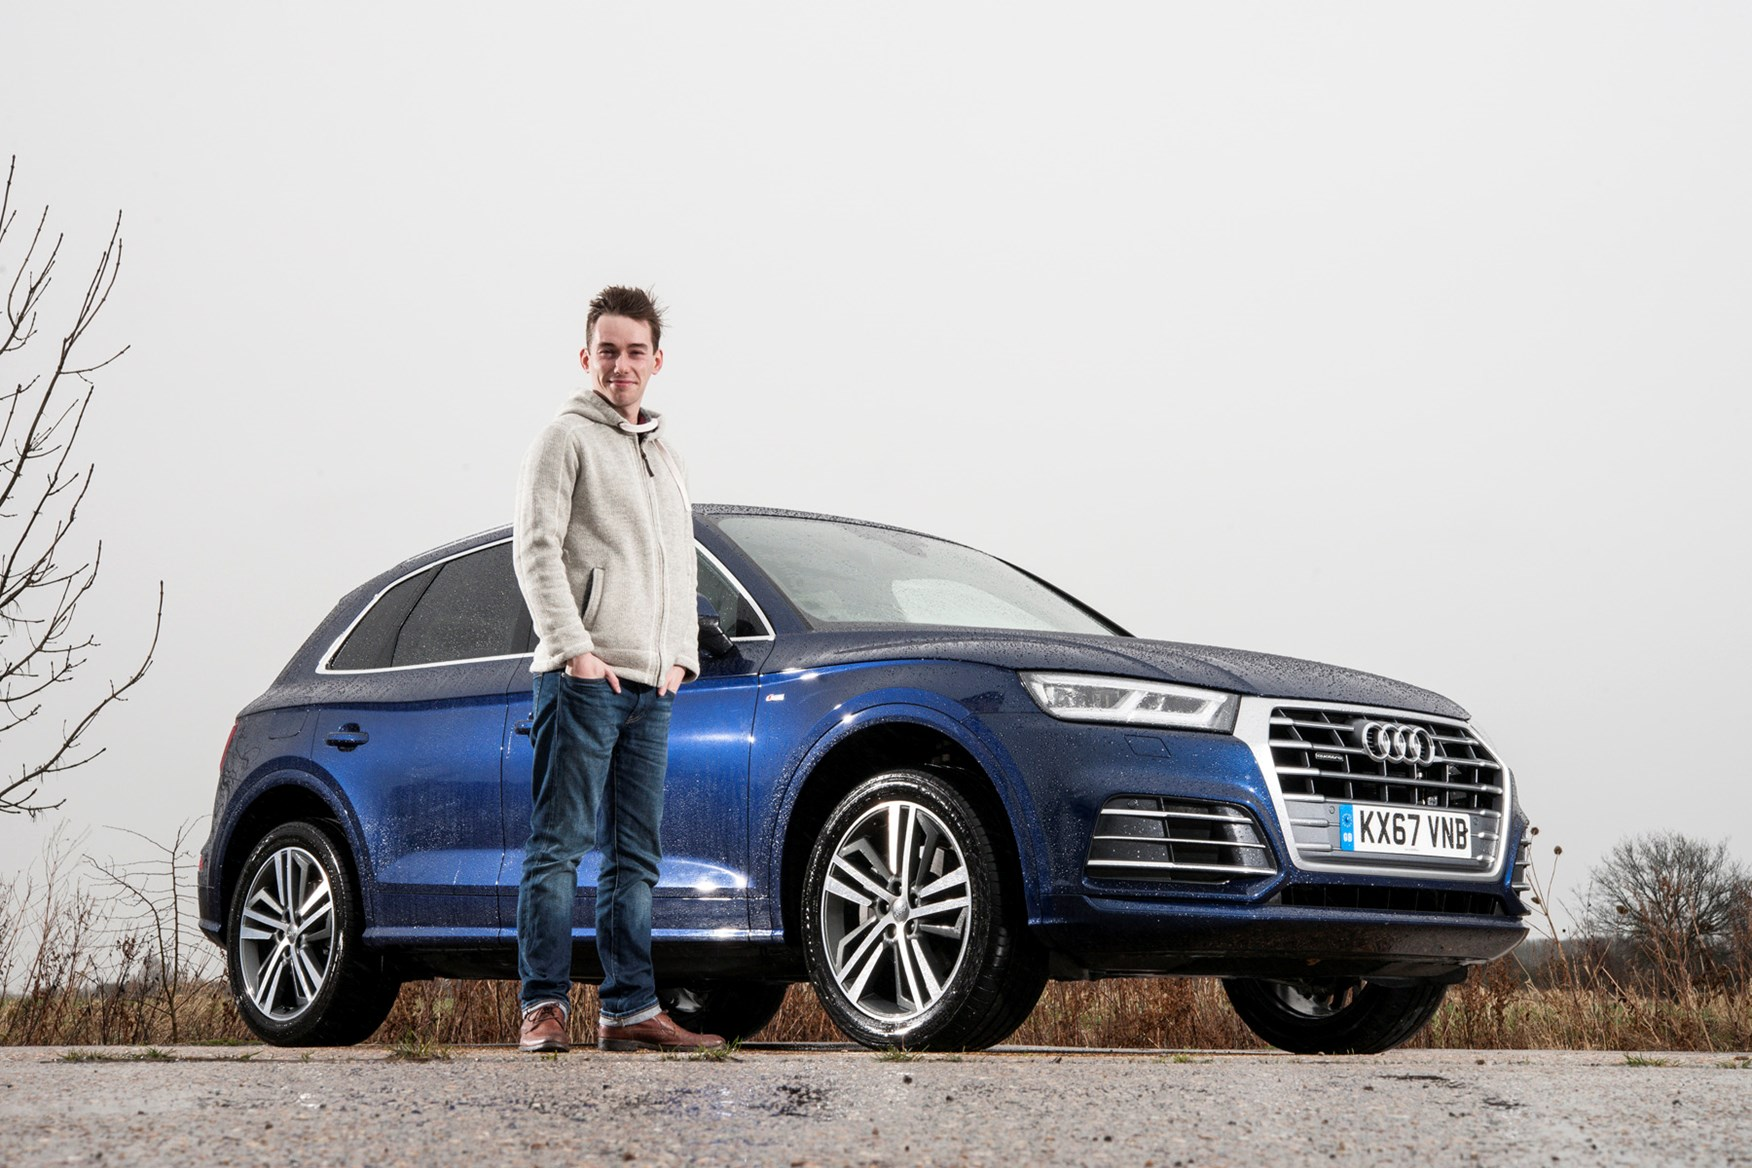 Blue 2017 Audi Q5 SUV with James Dennison